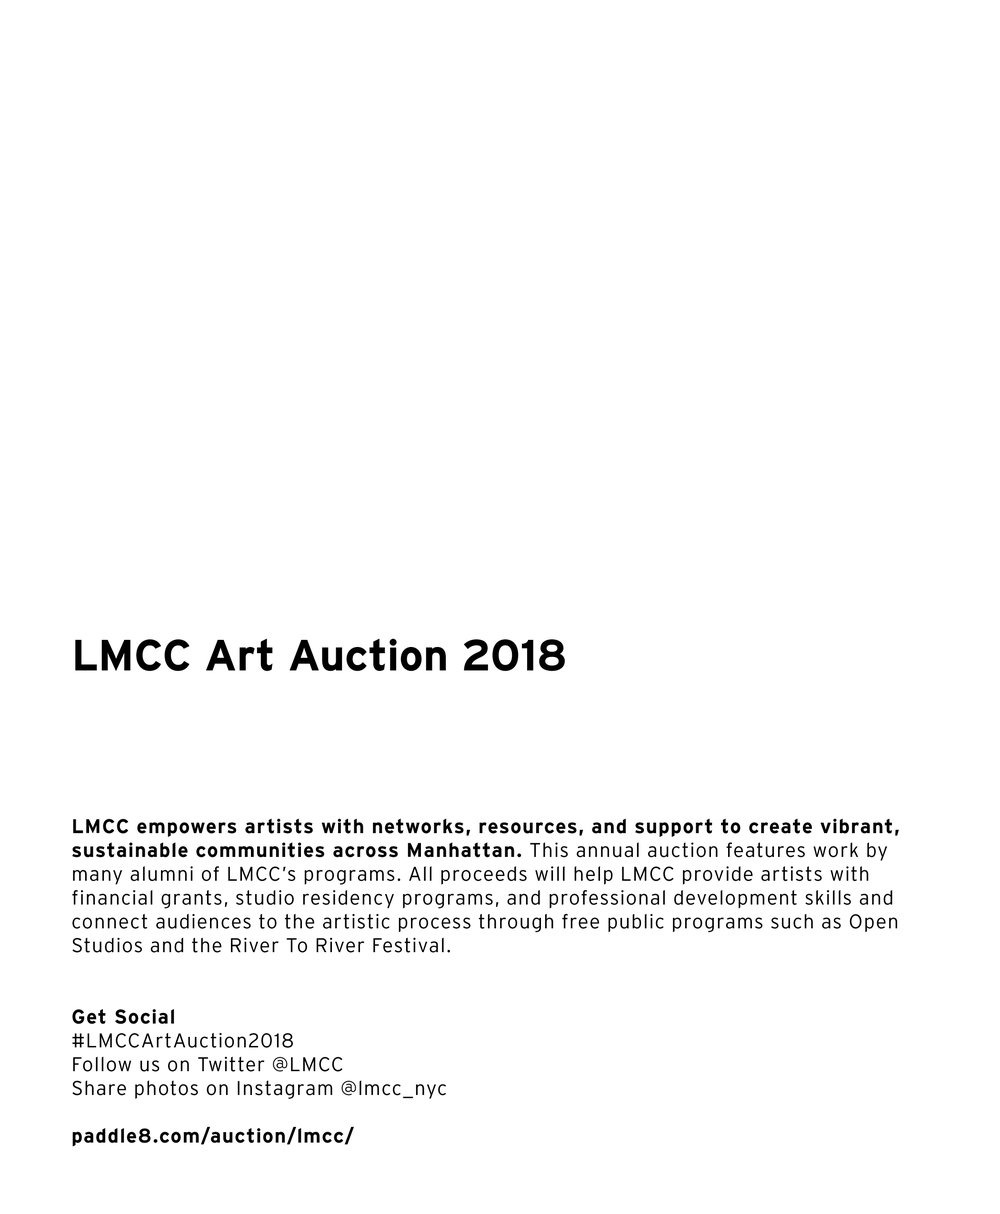 2018-DD-Art-Auction-Program-0509-04 BW-1.jpg